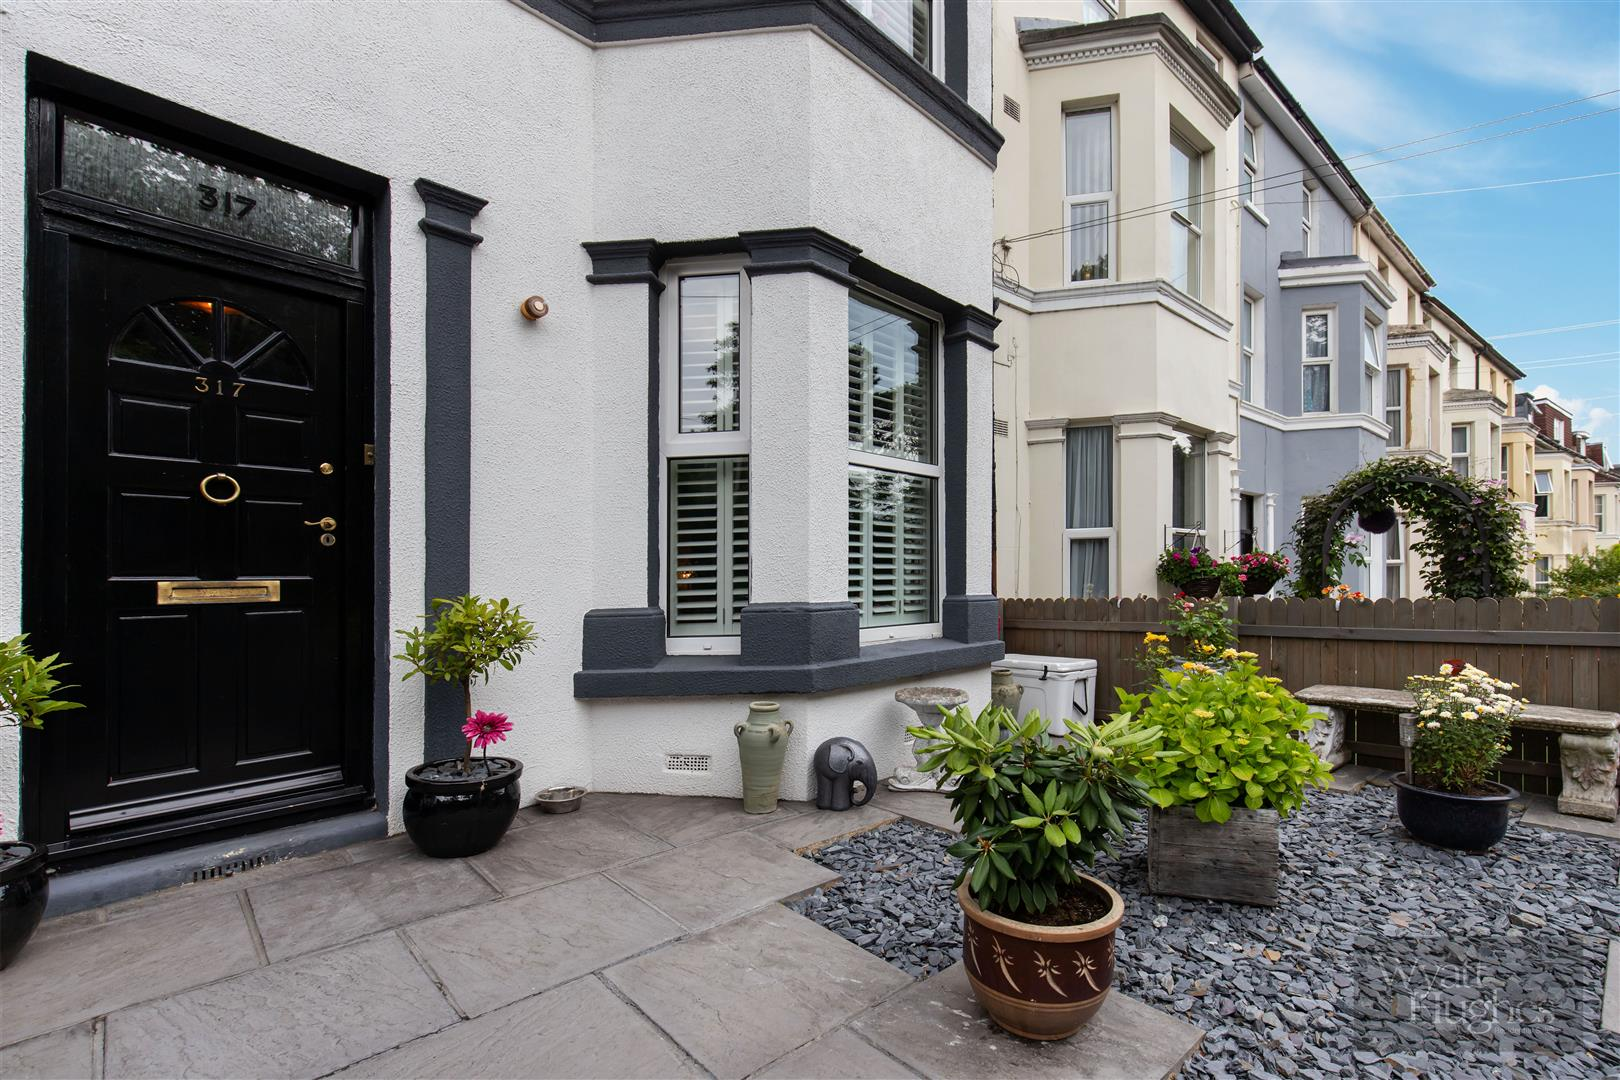 3 bed terraced house for sale in London Road, St. Leonards-On-Sea - Property Image 1